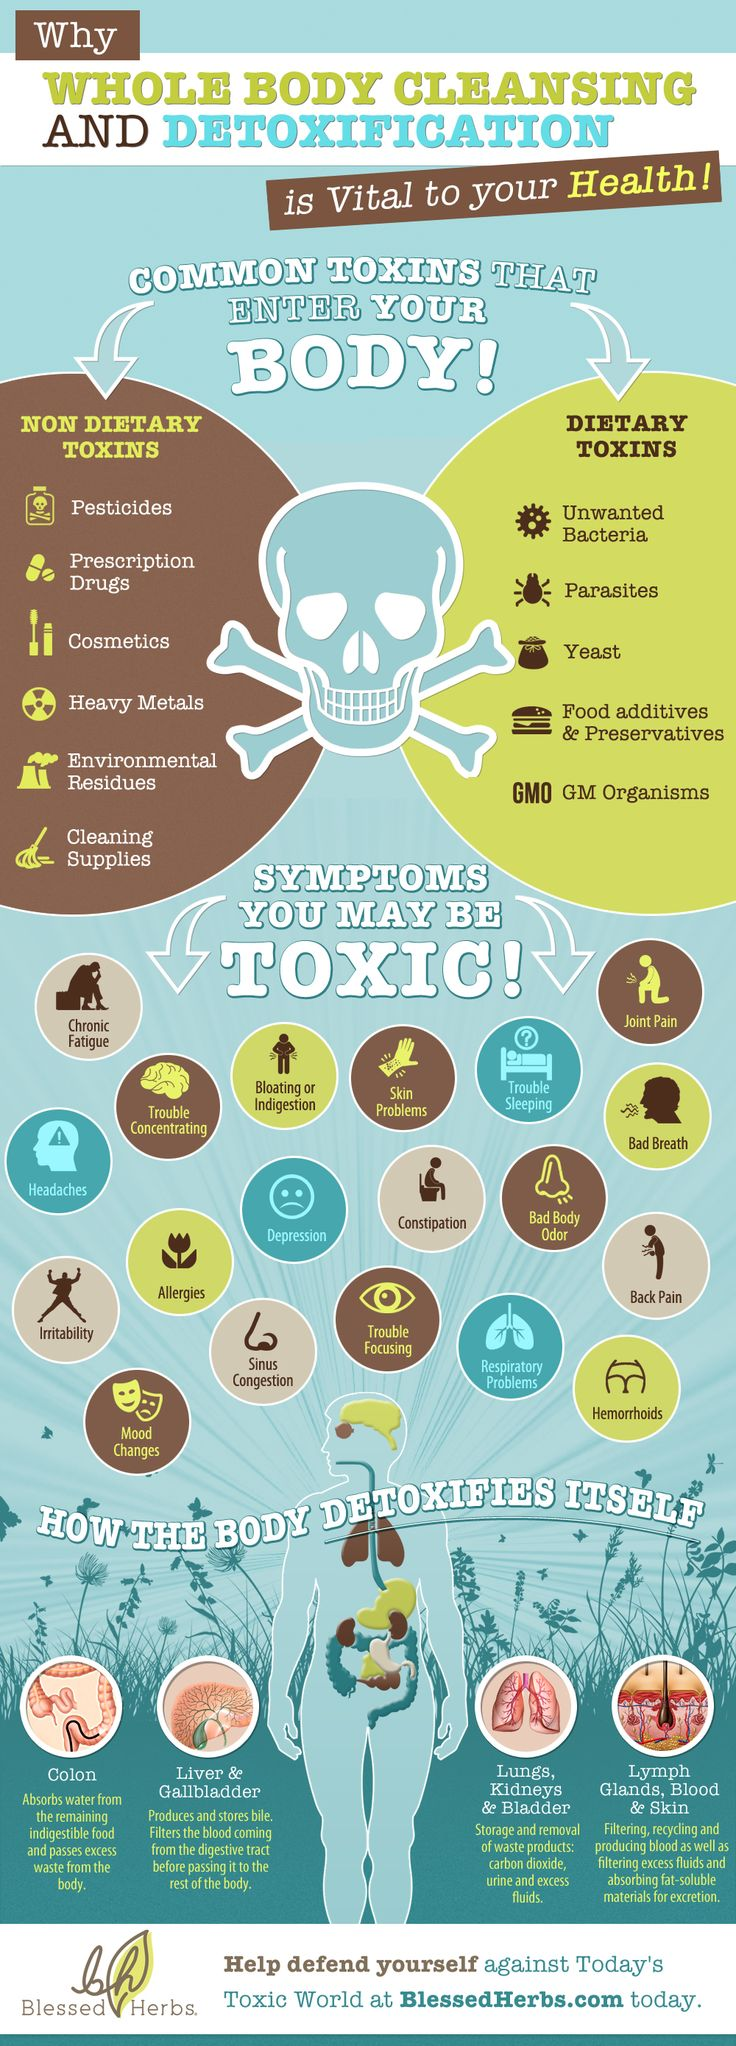 [INFOGRAPHIC] Why Whole Body Cleansing and Detoxification is Vital to Your Health! Identify common toxins that enter your body and symptoms you may be toxic + how the body detoxifies itself. #cleansing #detox